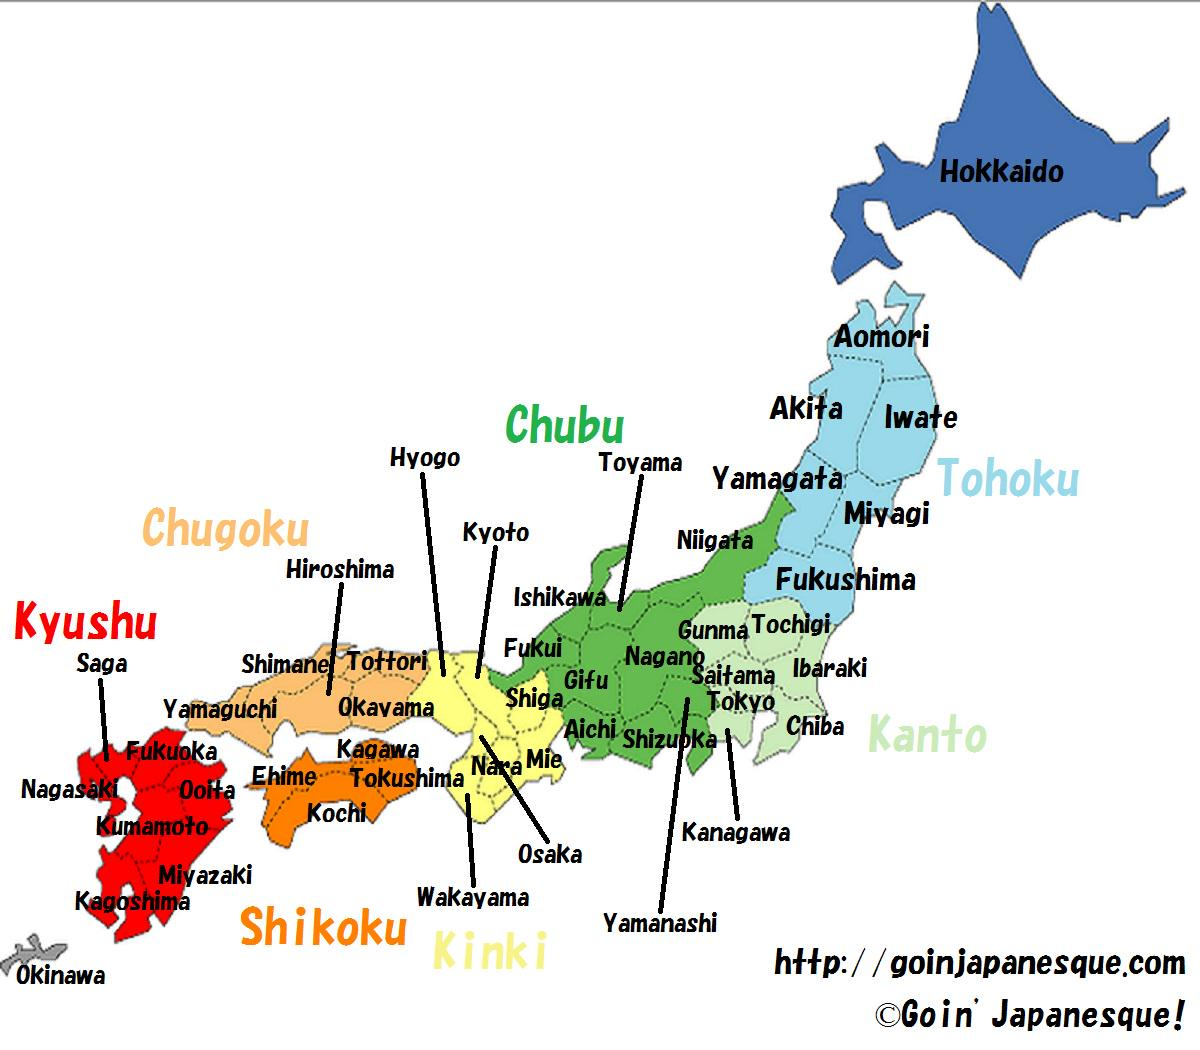 Goin Japanesque On Twitter Map Of Japan English